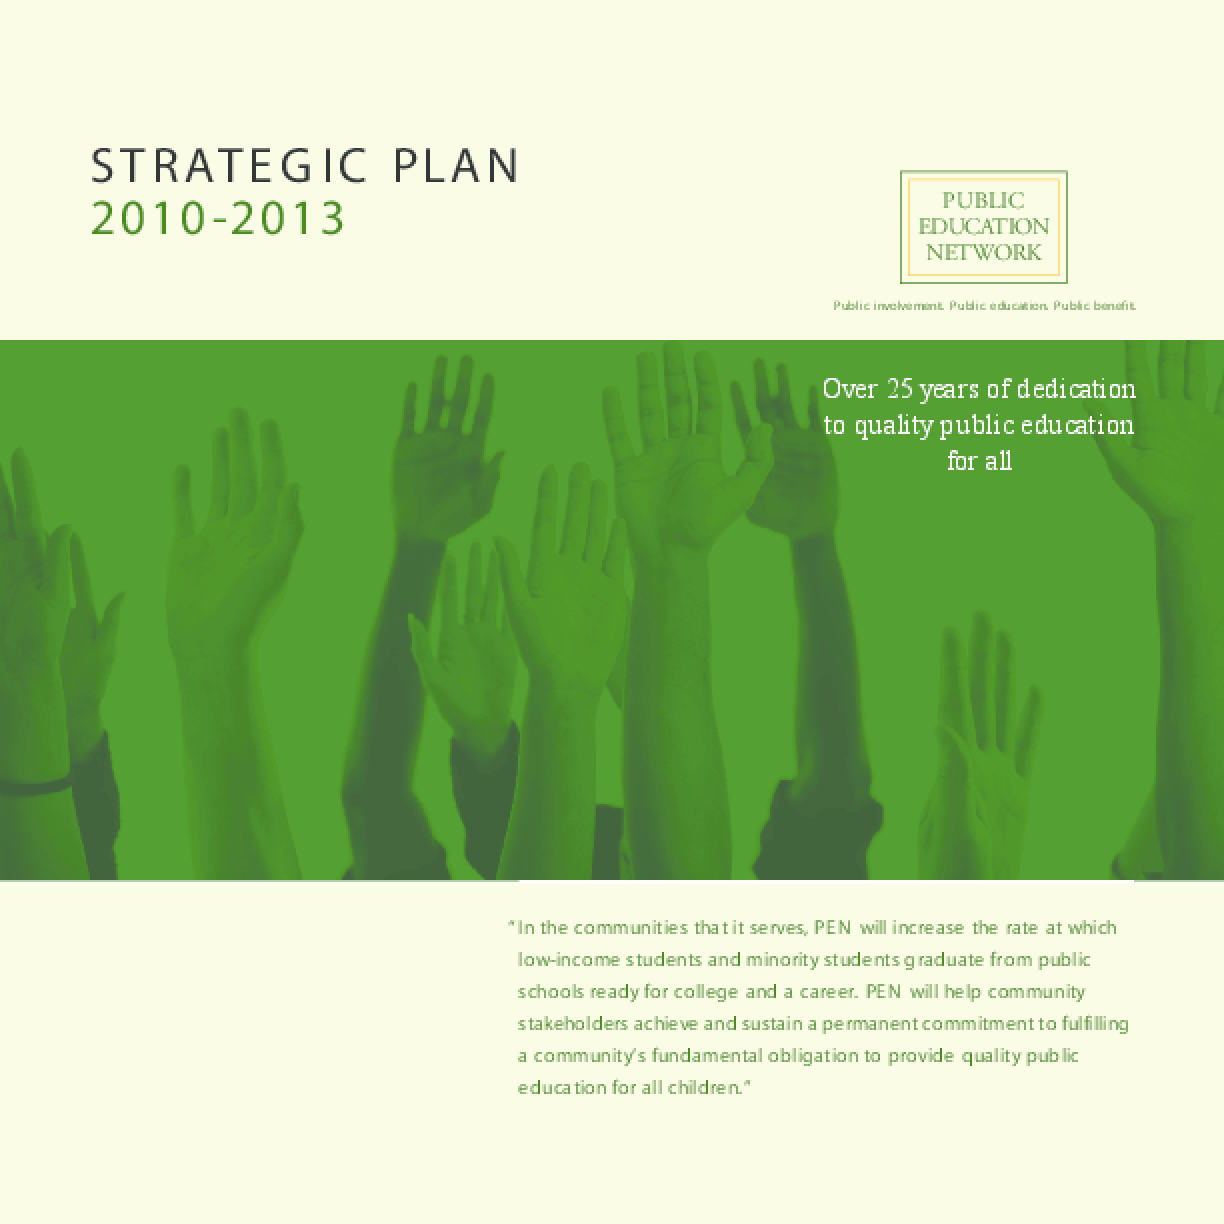 Public Education Network - Strategic Plan 2010-2013